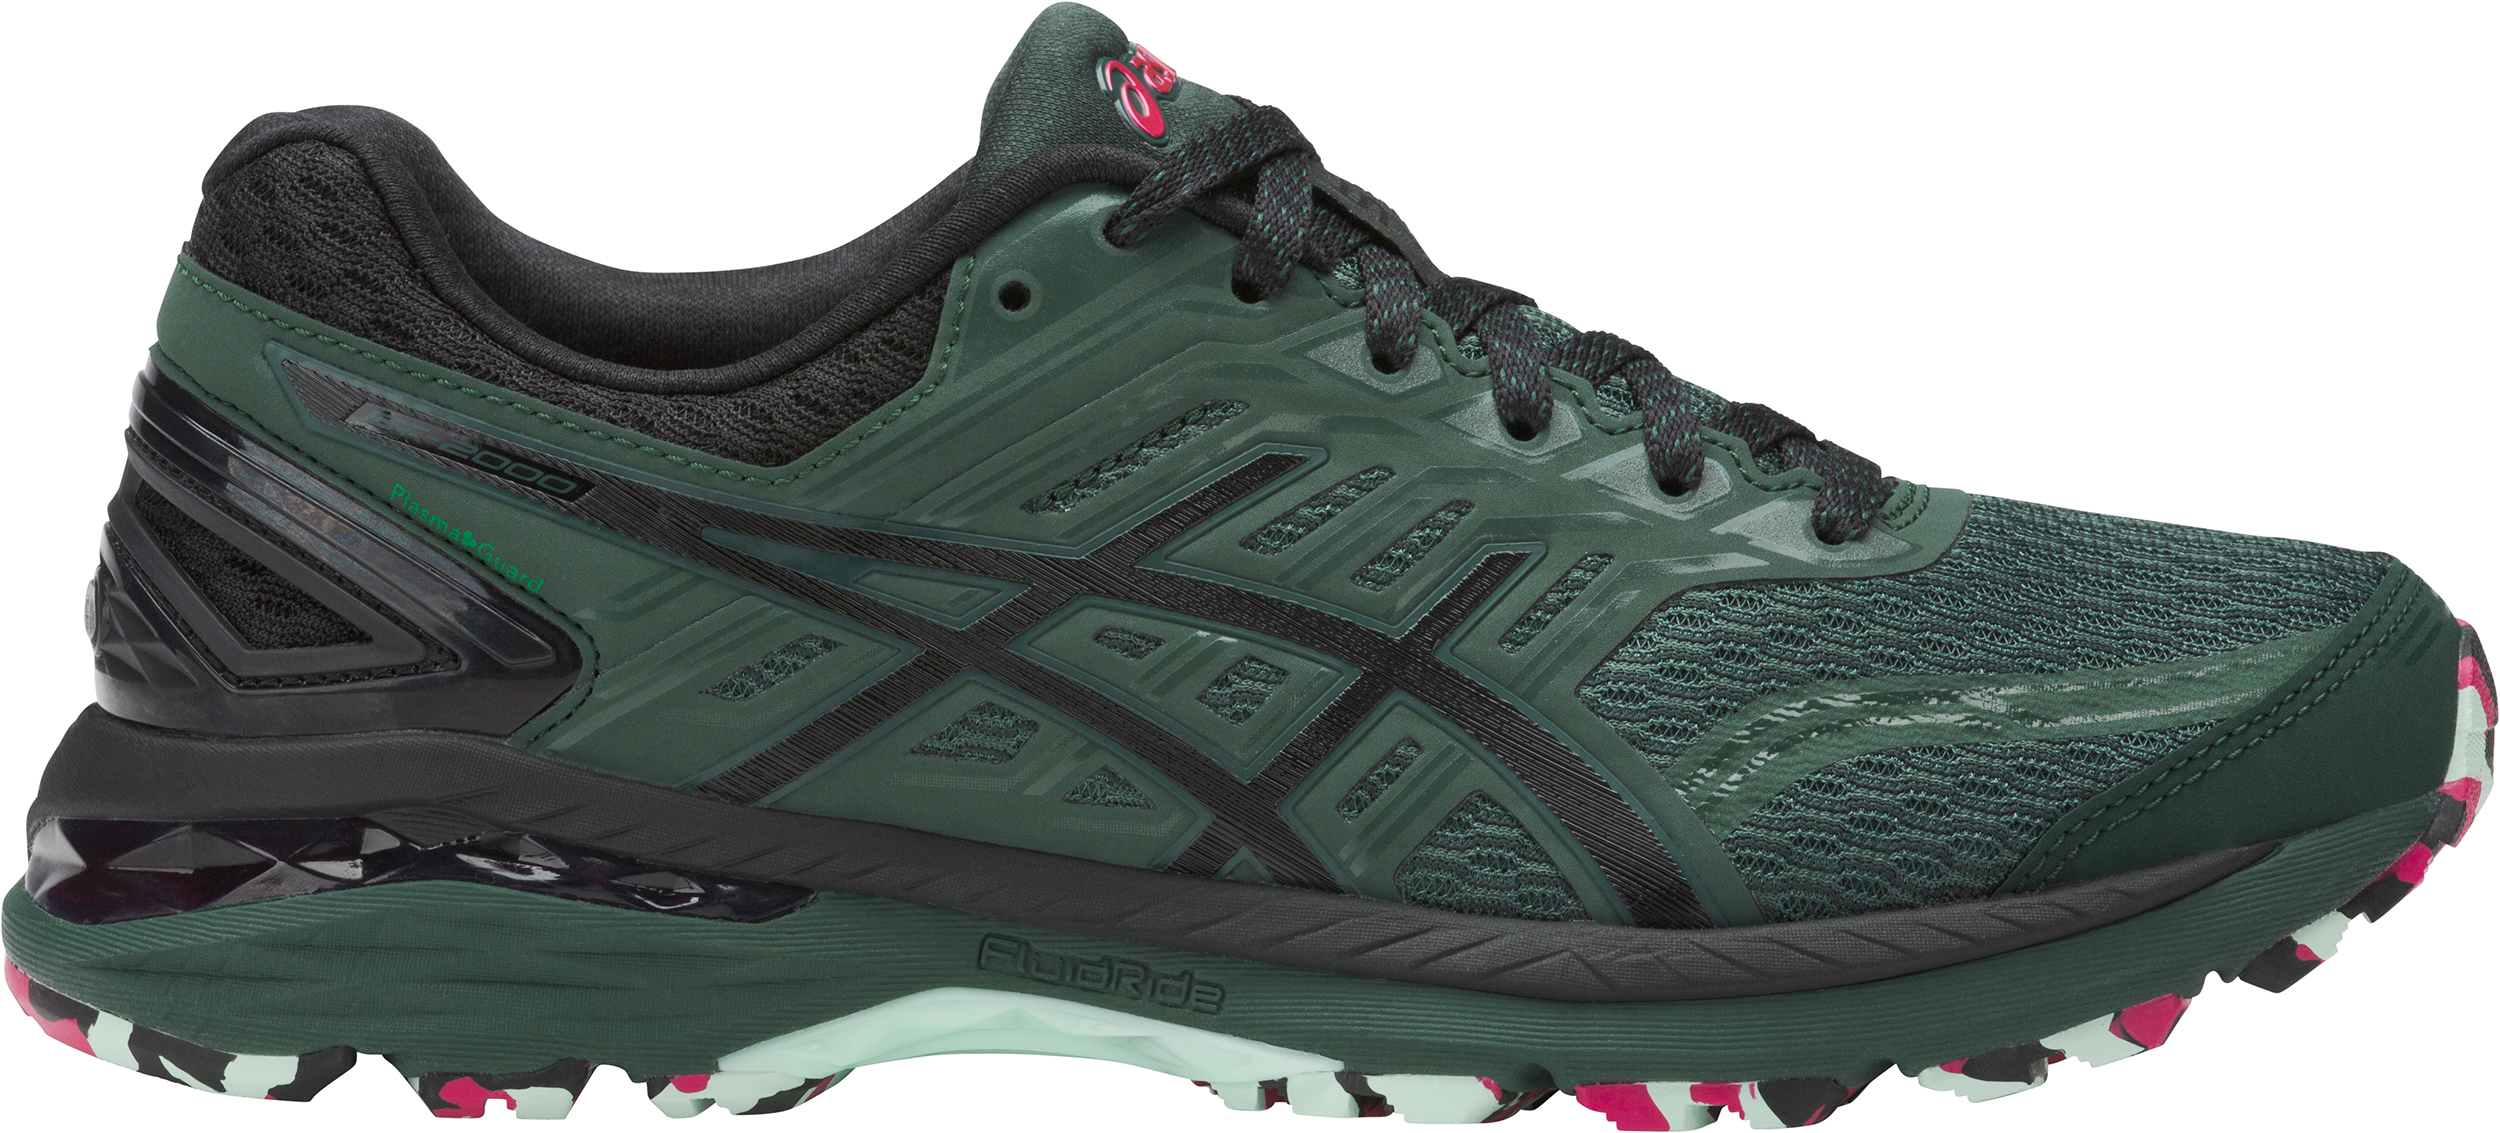 f07e9bb9 Asics GT-2000 5 Trail PG Running Shoes - Women's | MEC